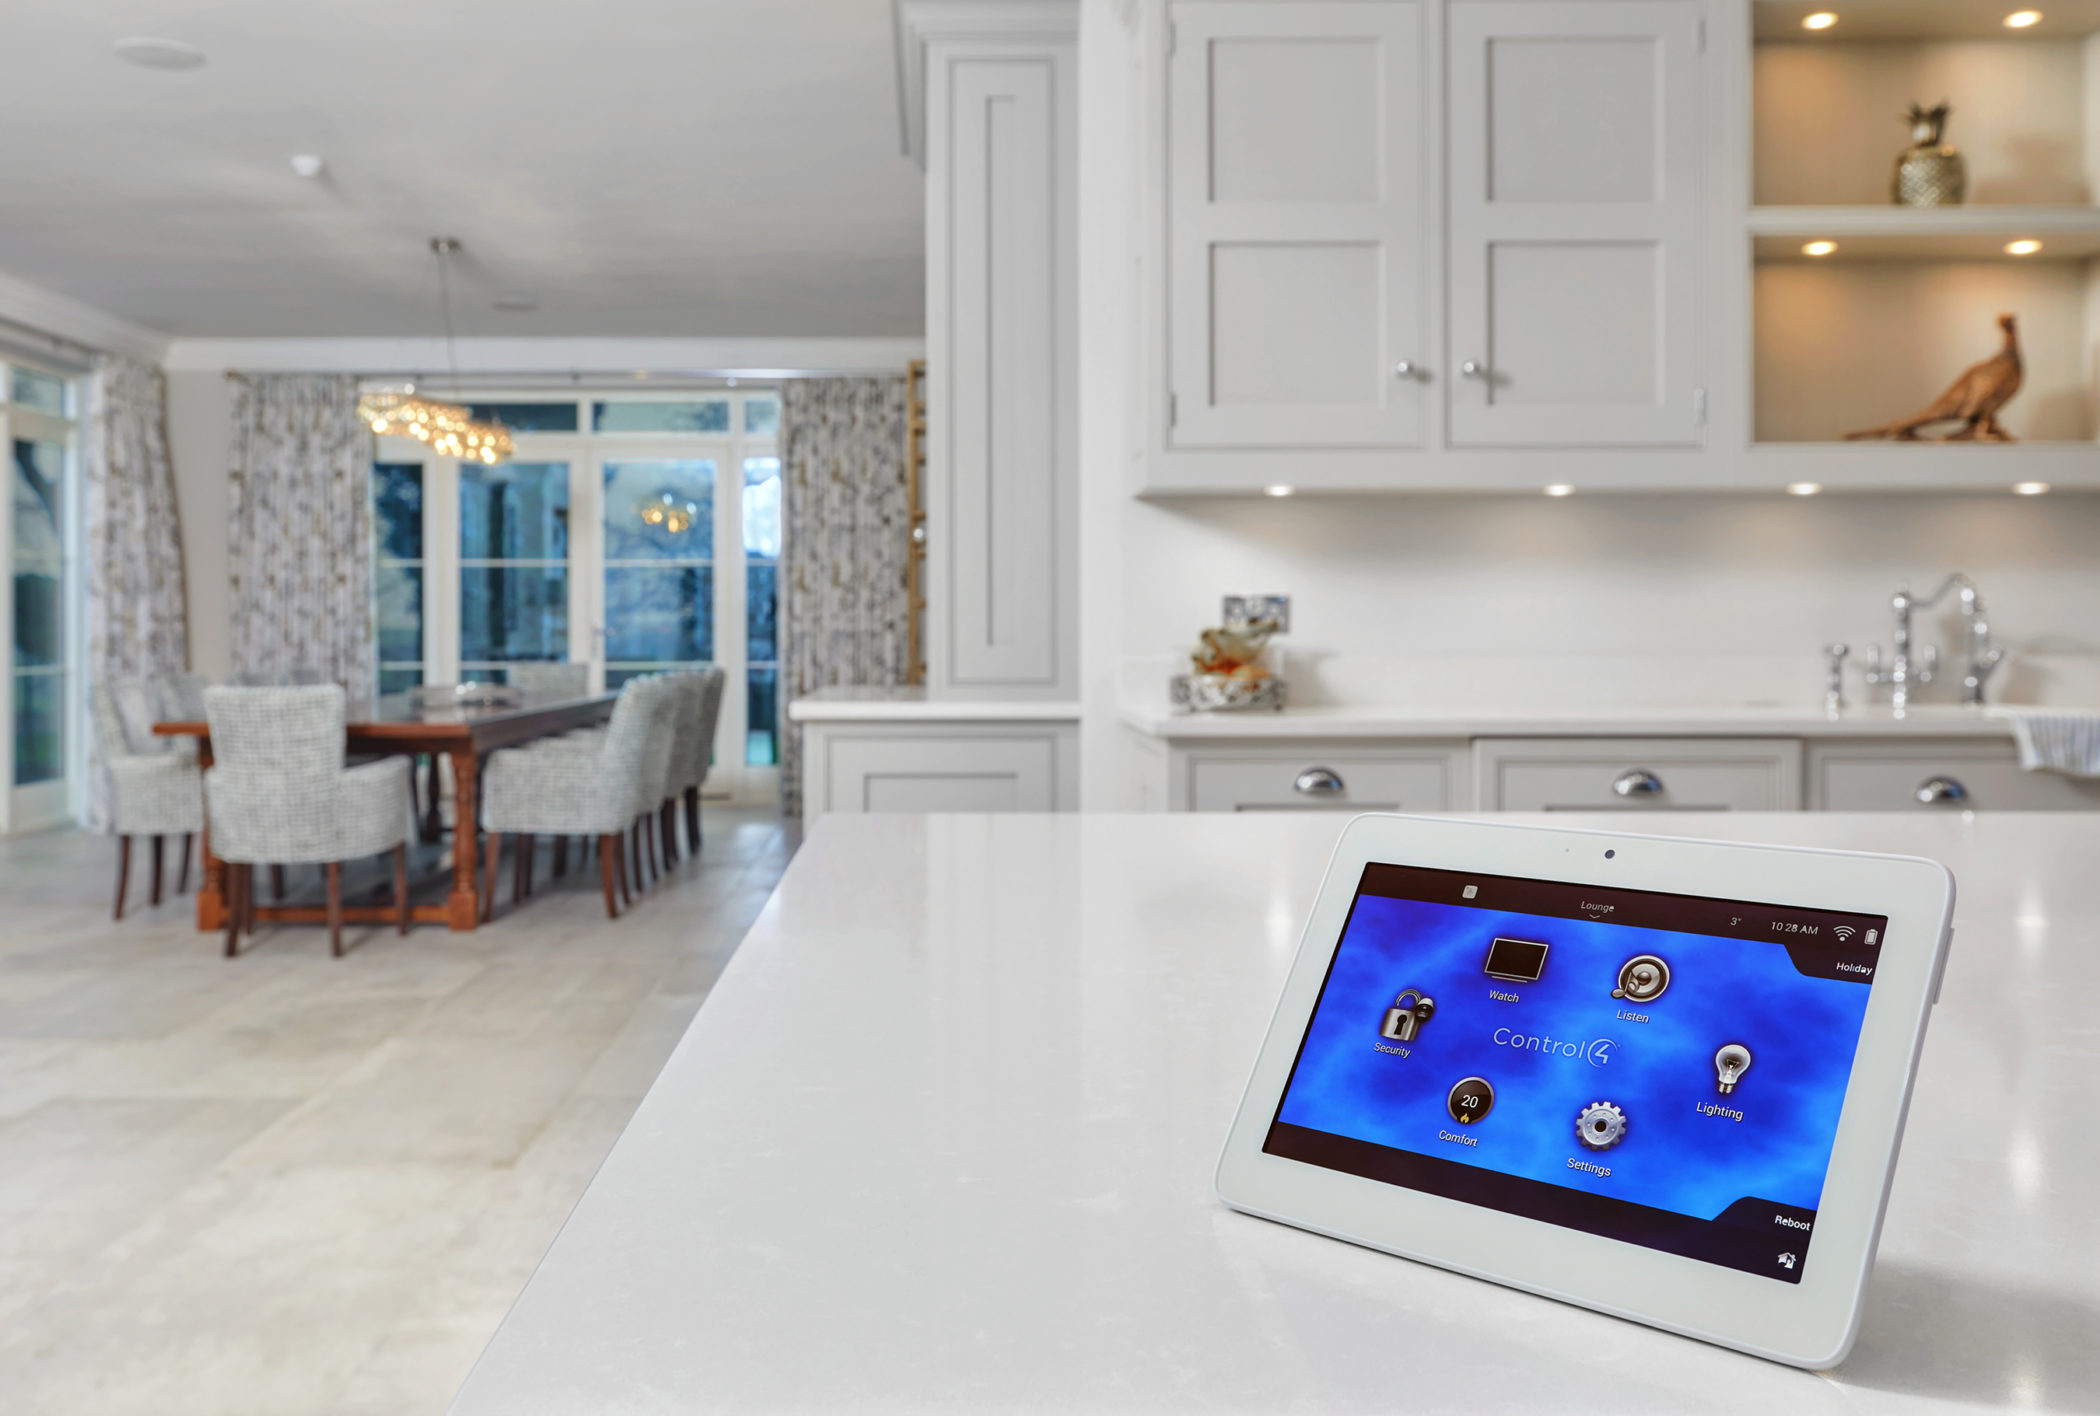 smart home controls from one device